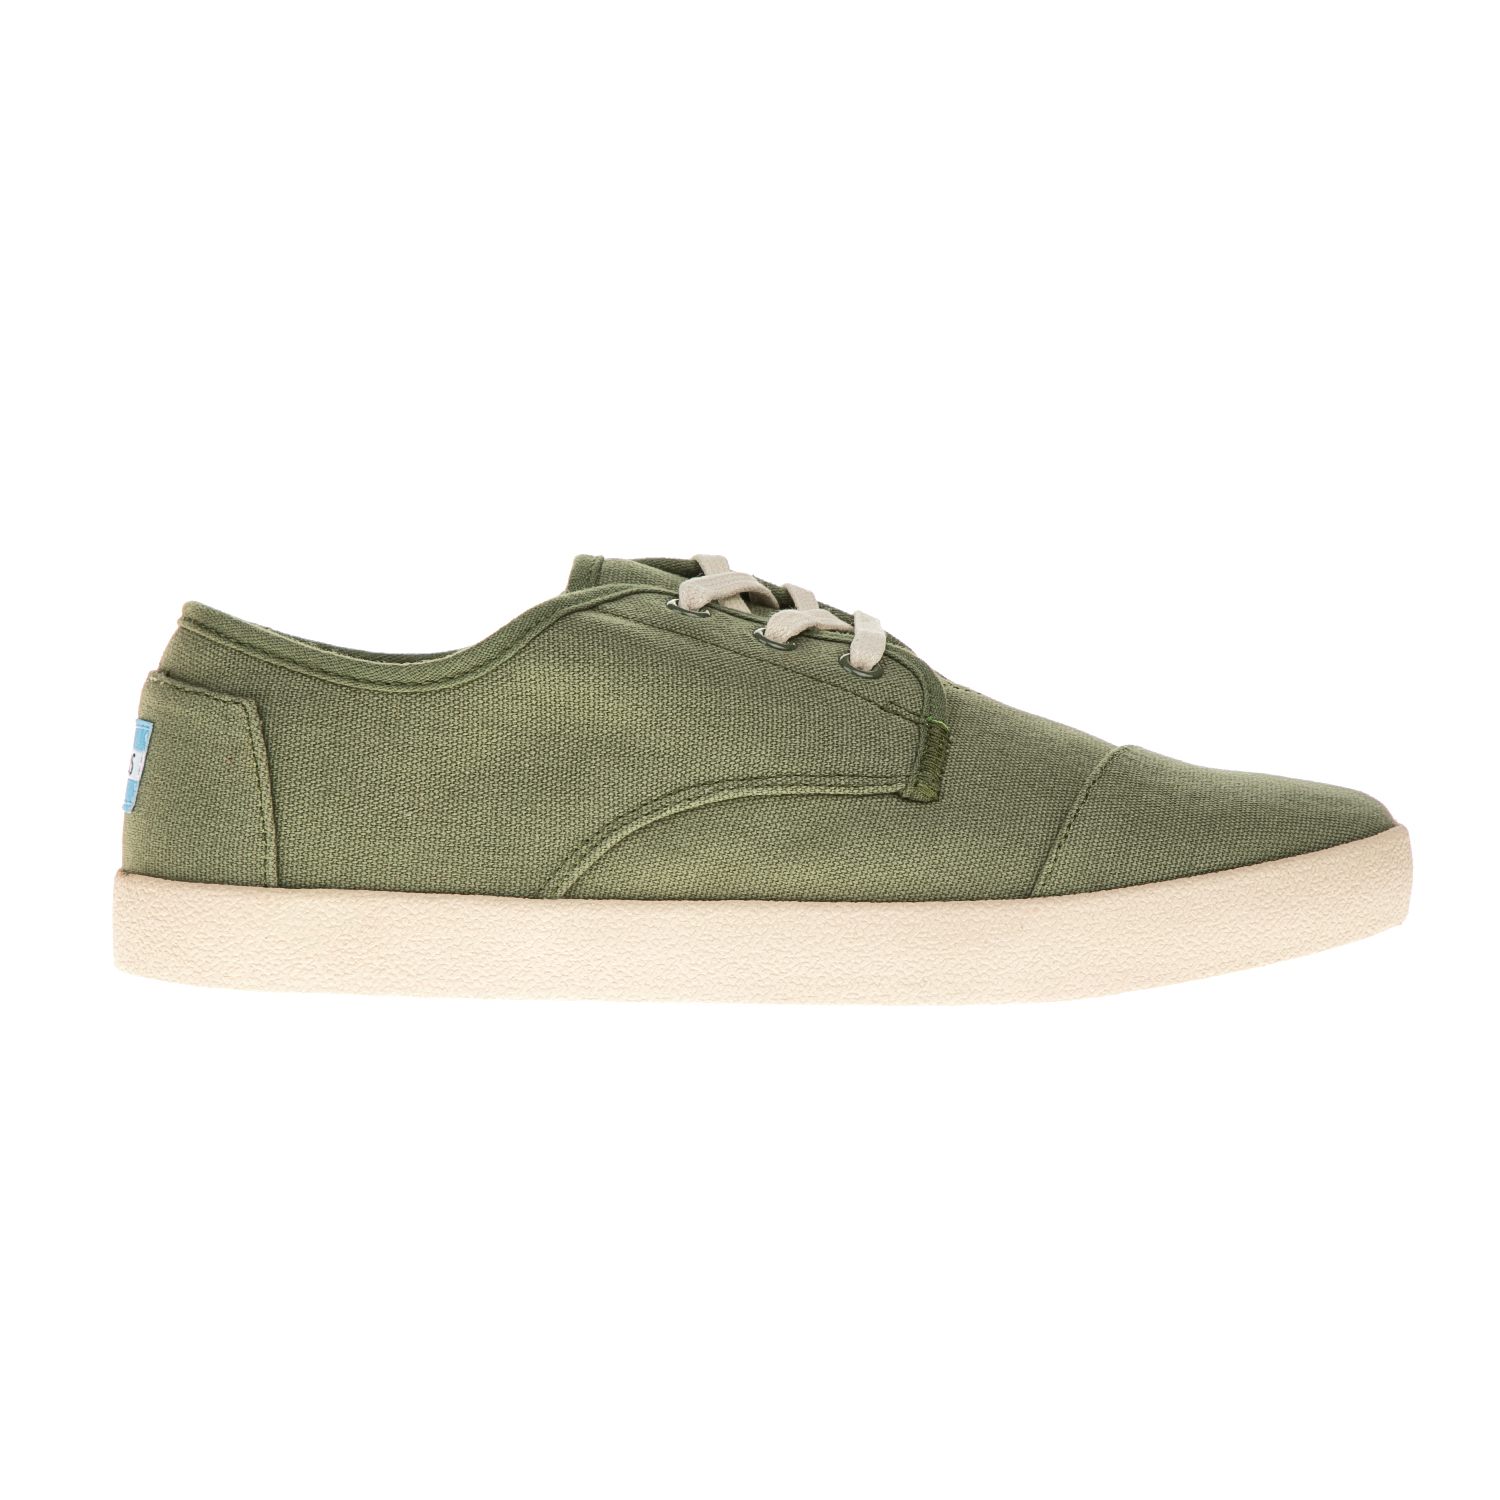 TOMS – Ανδρικά sneakers TOMS λαδί